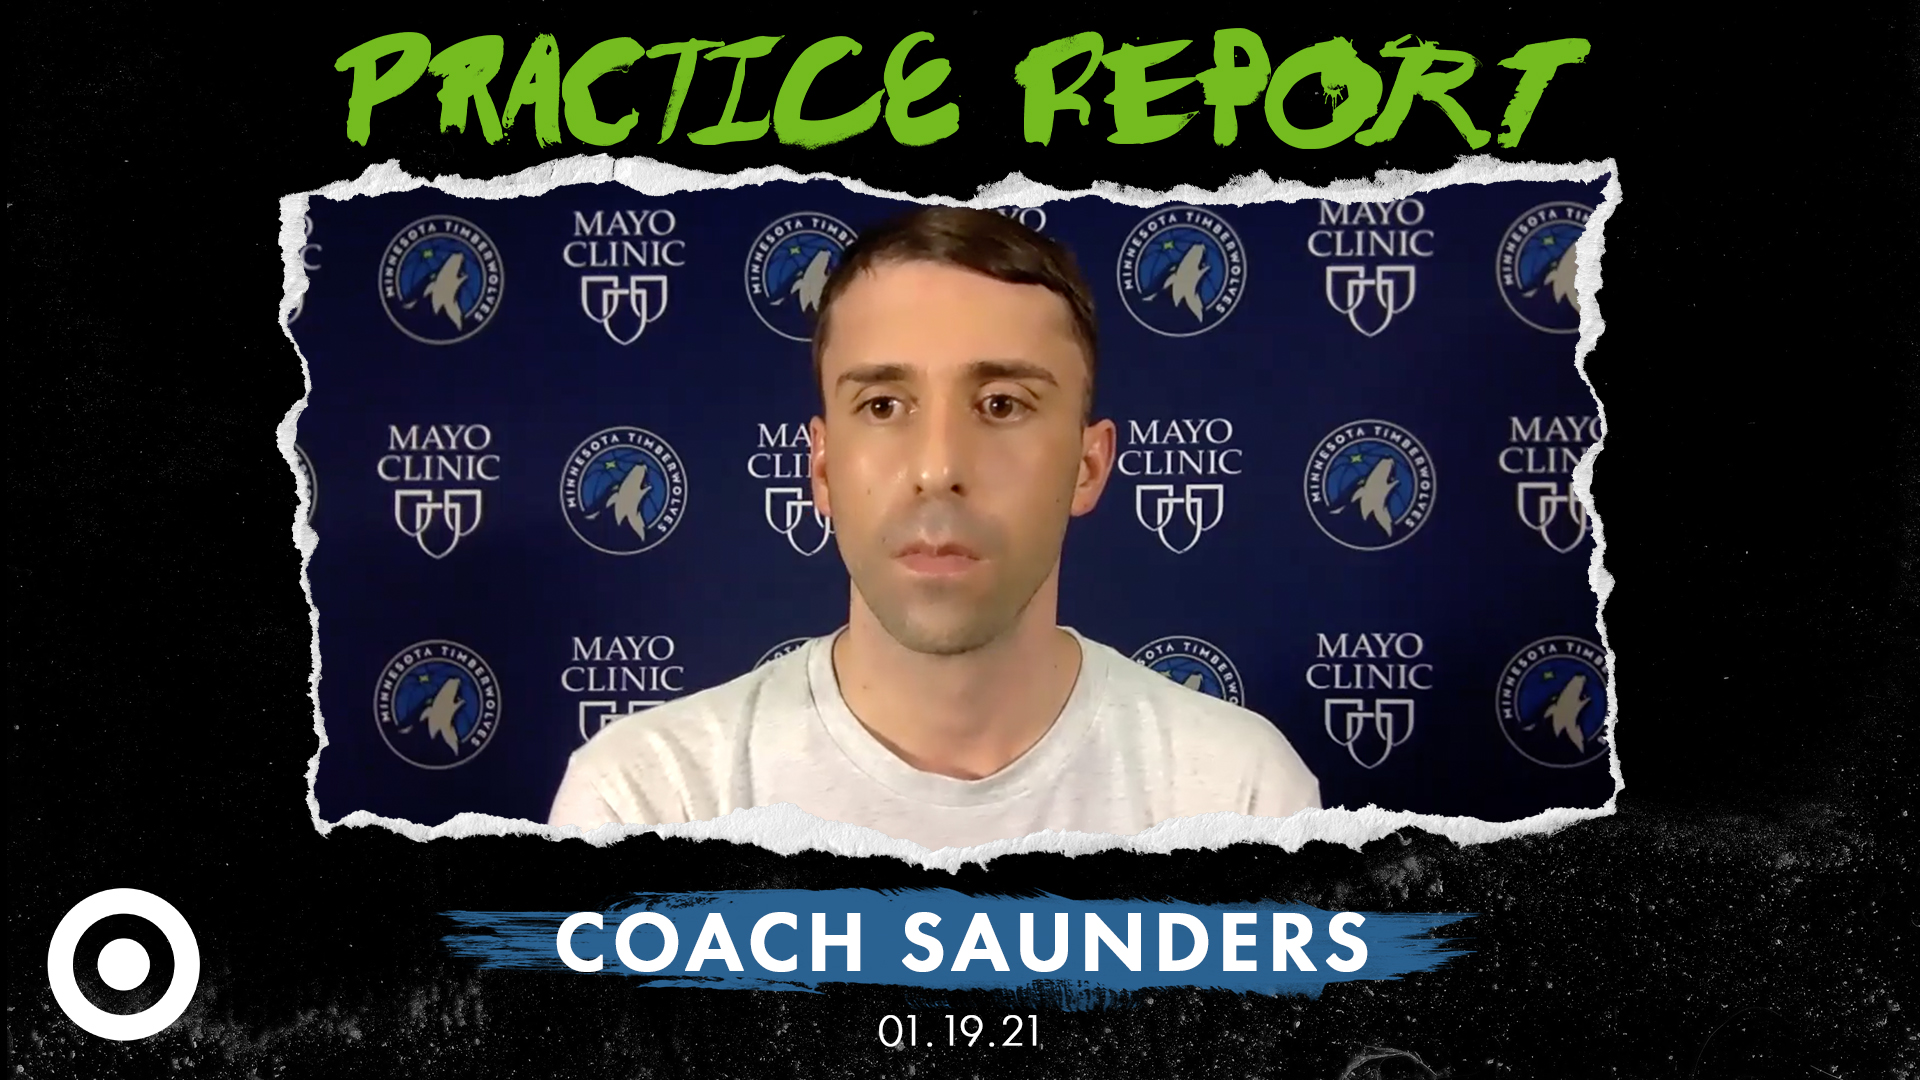 Coach Saunders Practice Report - January 19, 2021